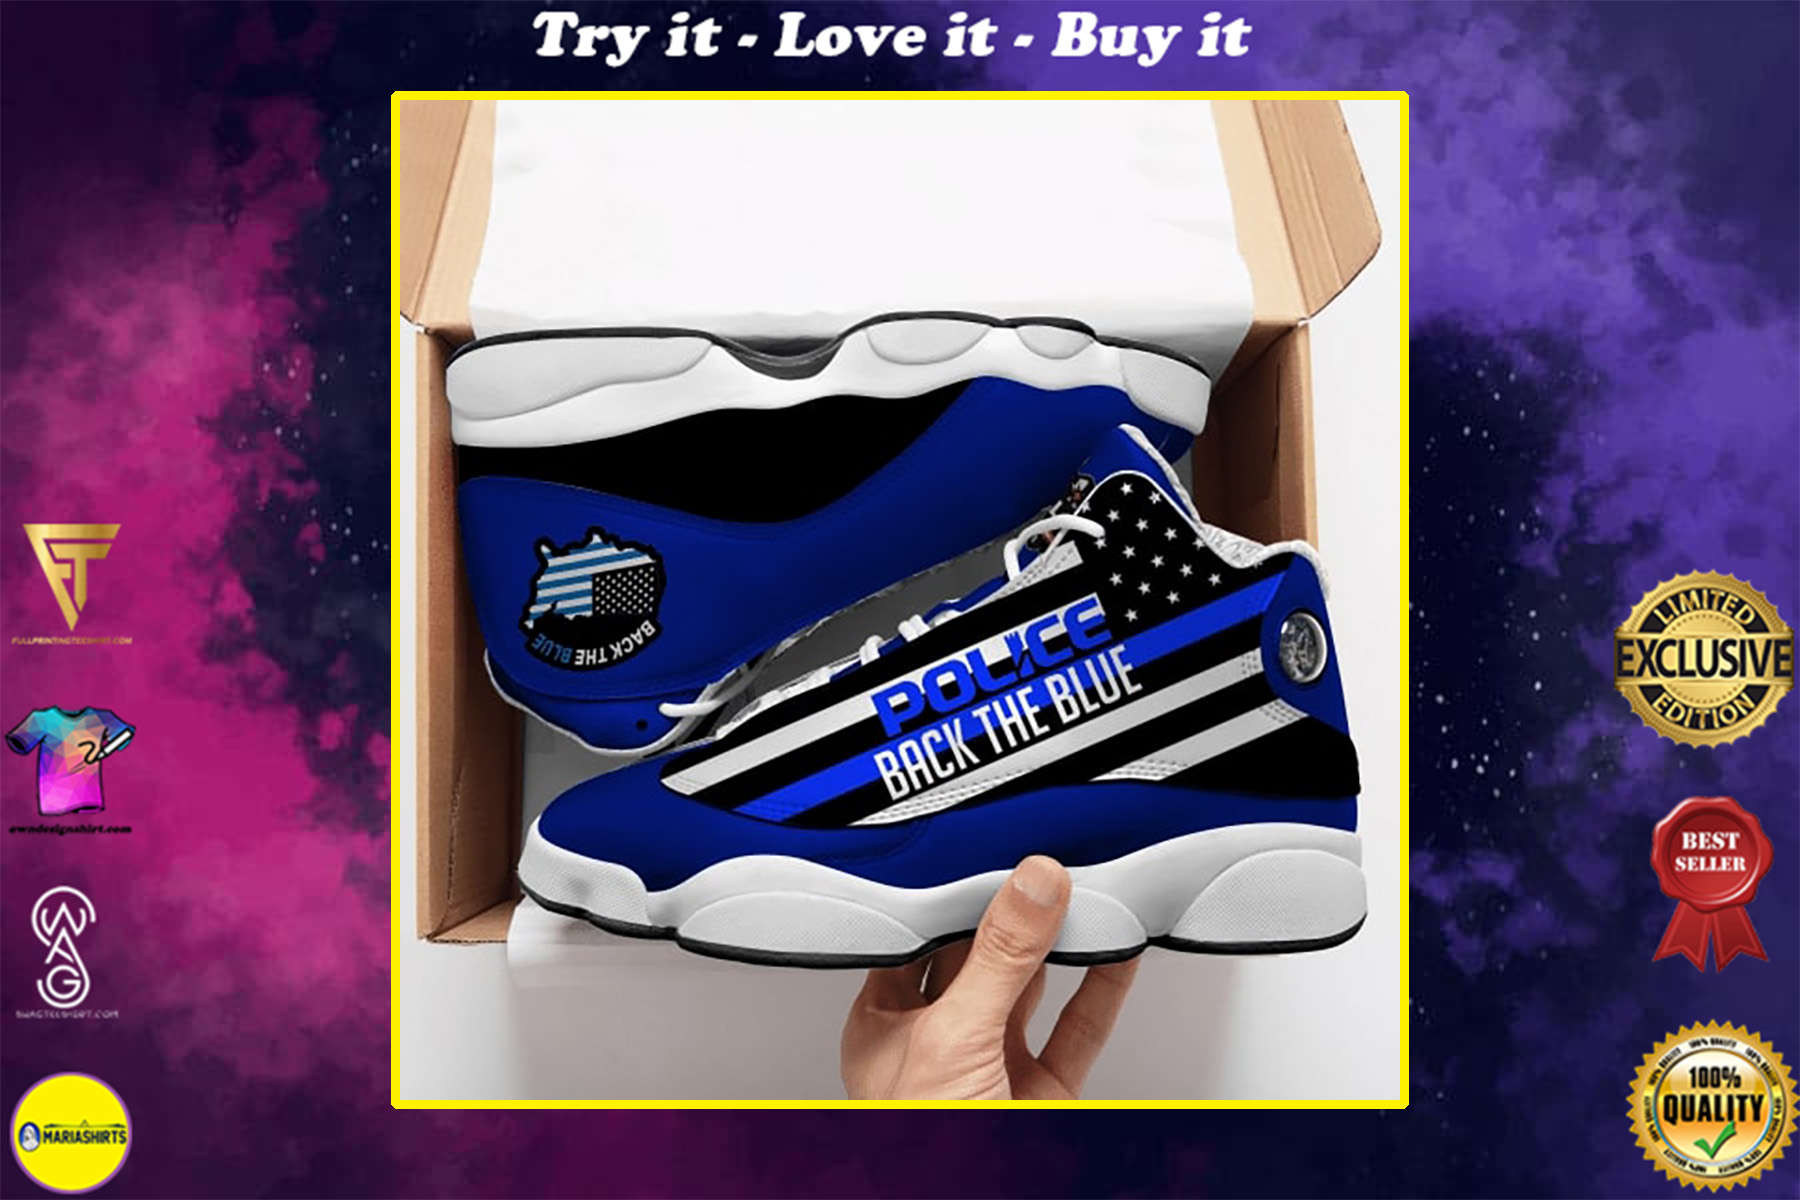 back the blue thin blue line american flag police support air jordan 13 sneakers